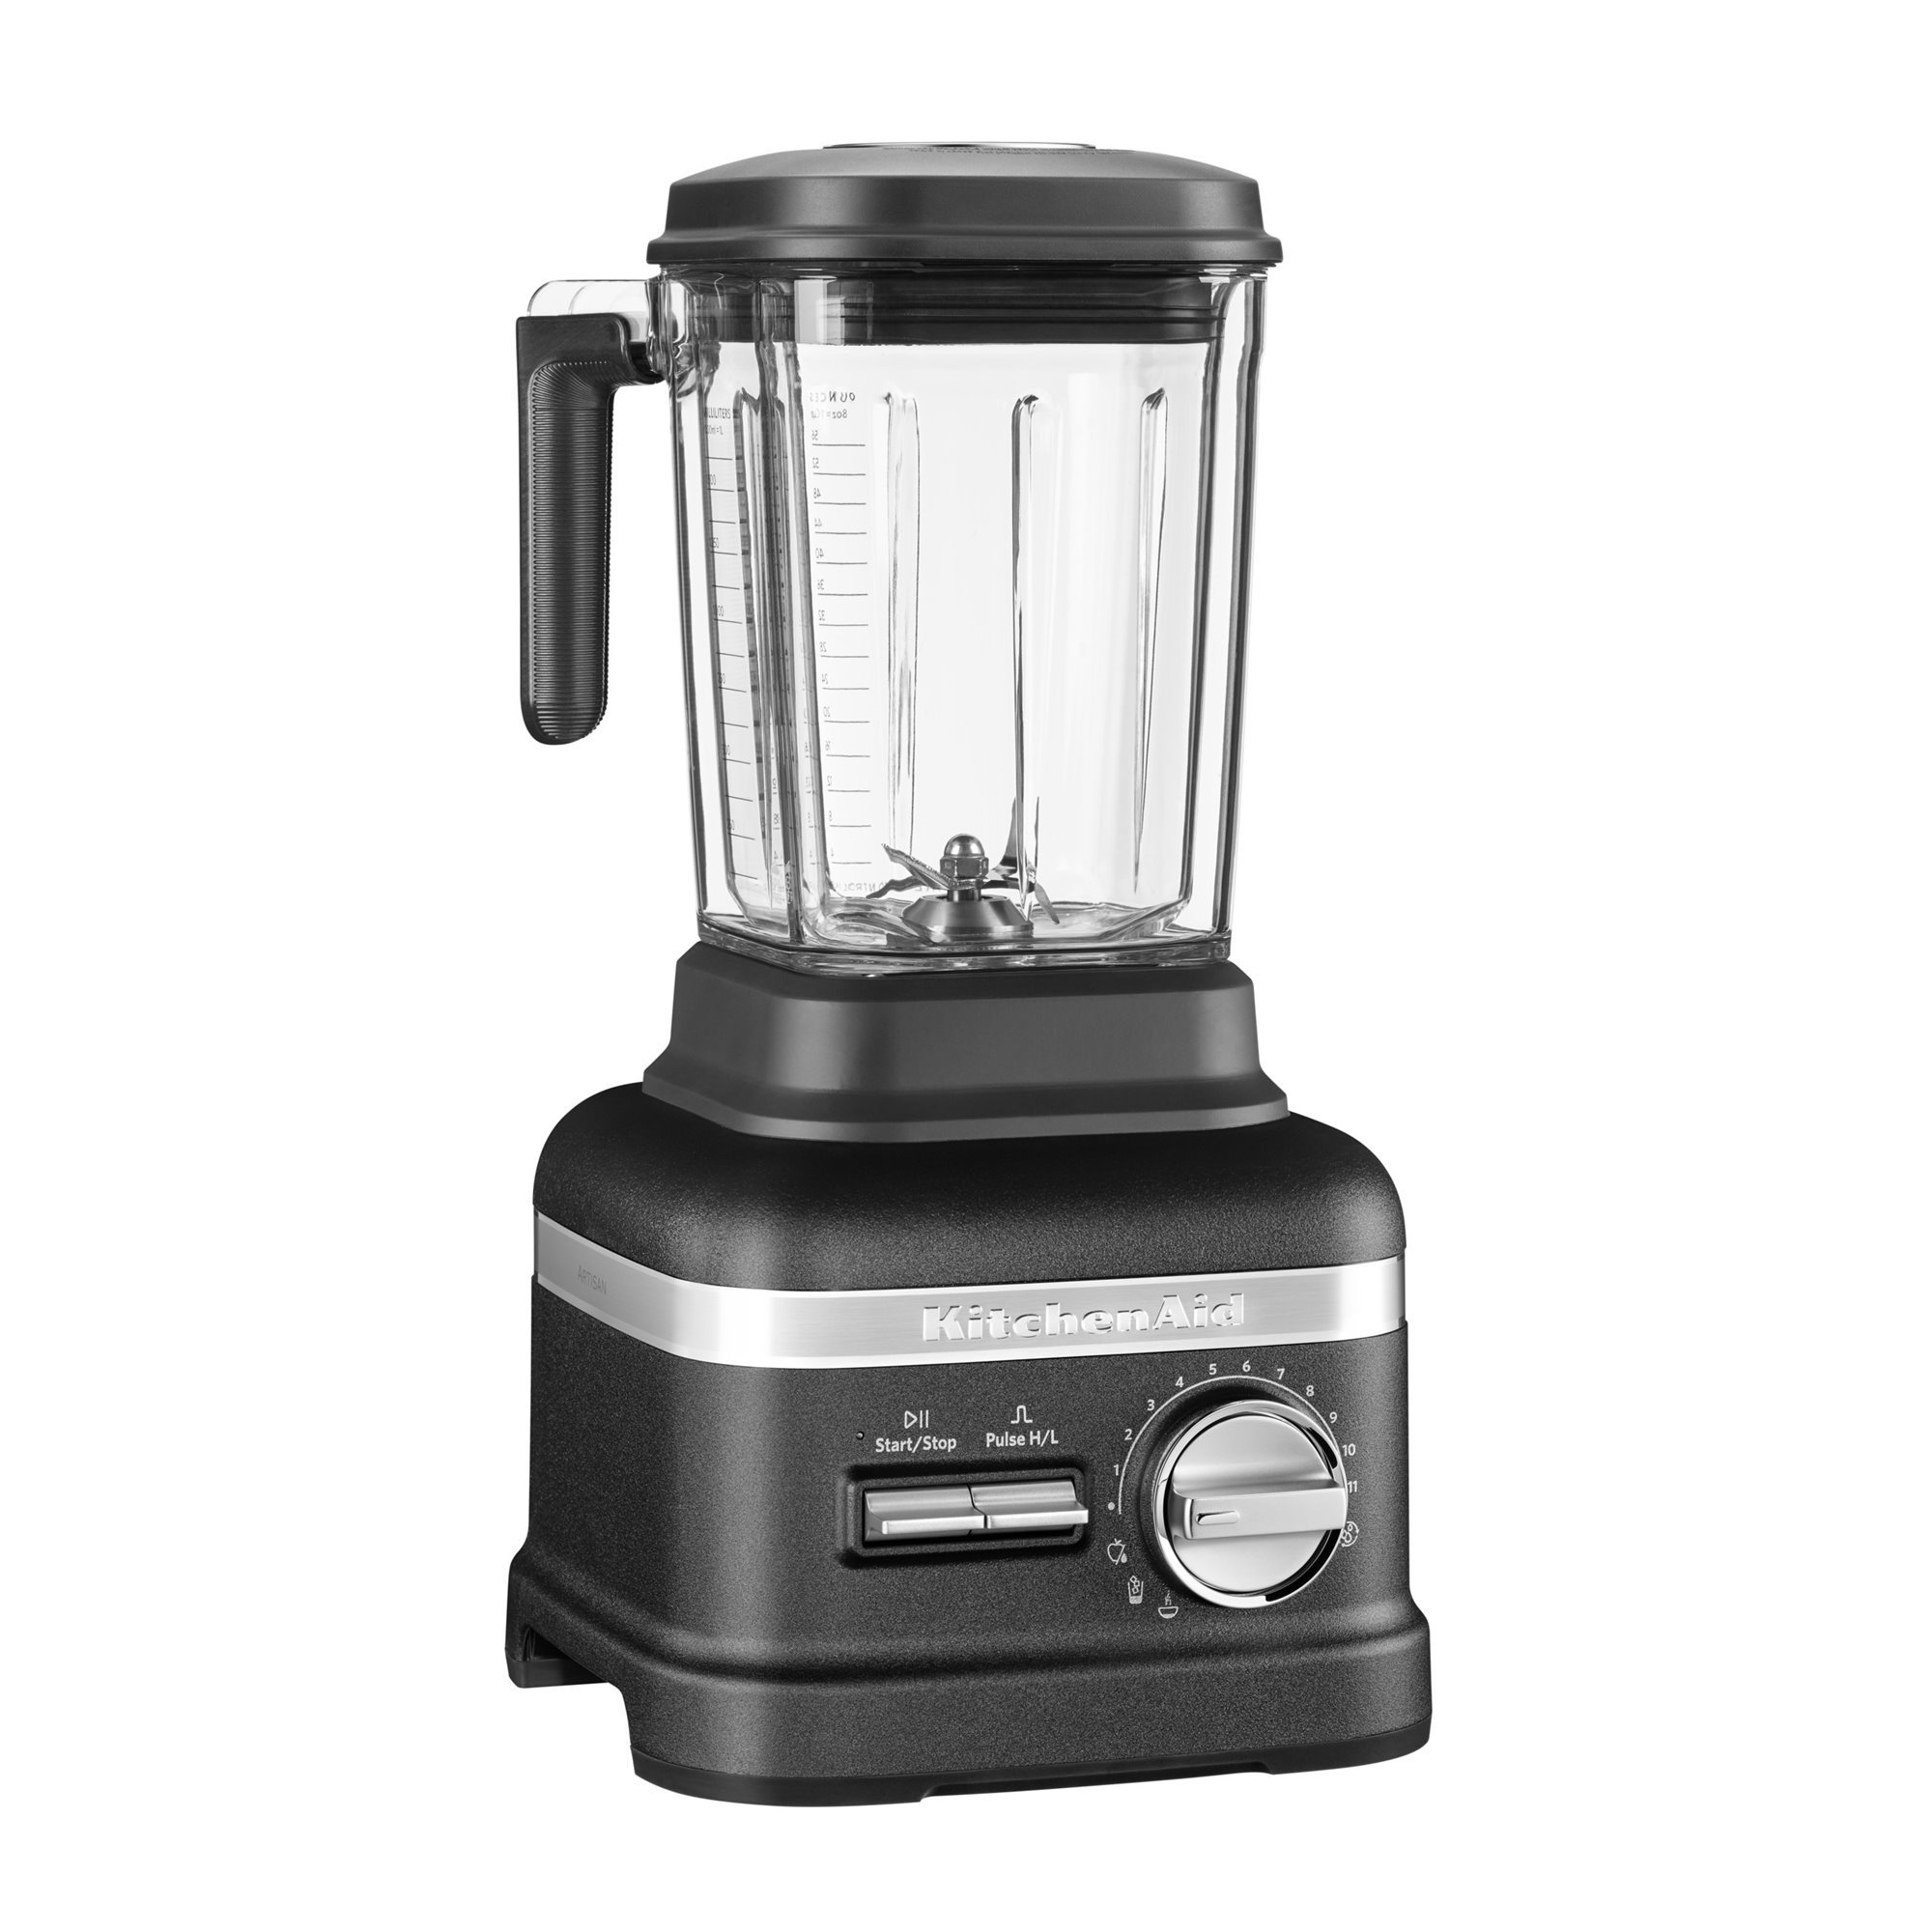 Blender Artisan Power Plus 5KSB8270E 12 trepte de viteza 26 L1800W KitchenAid